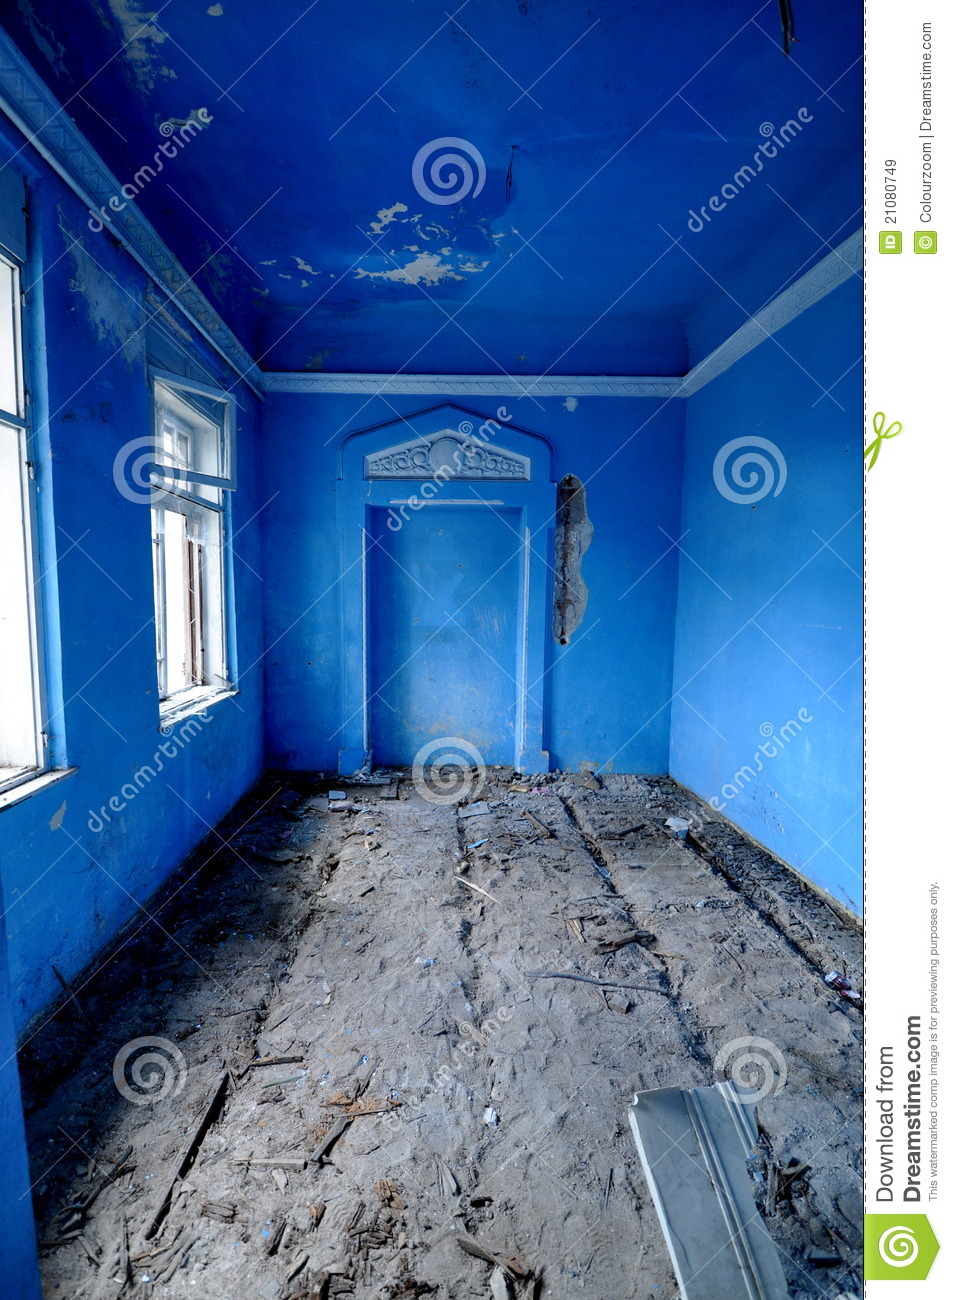 Vintage Blue Room Royalty Free Stock Images Image 21080749